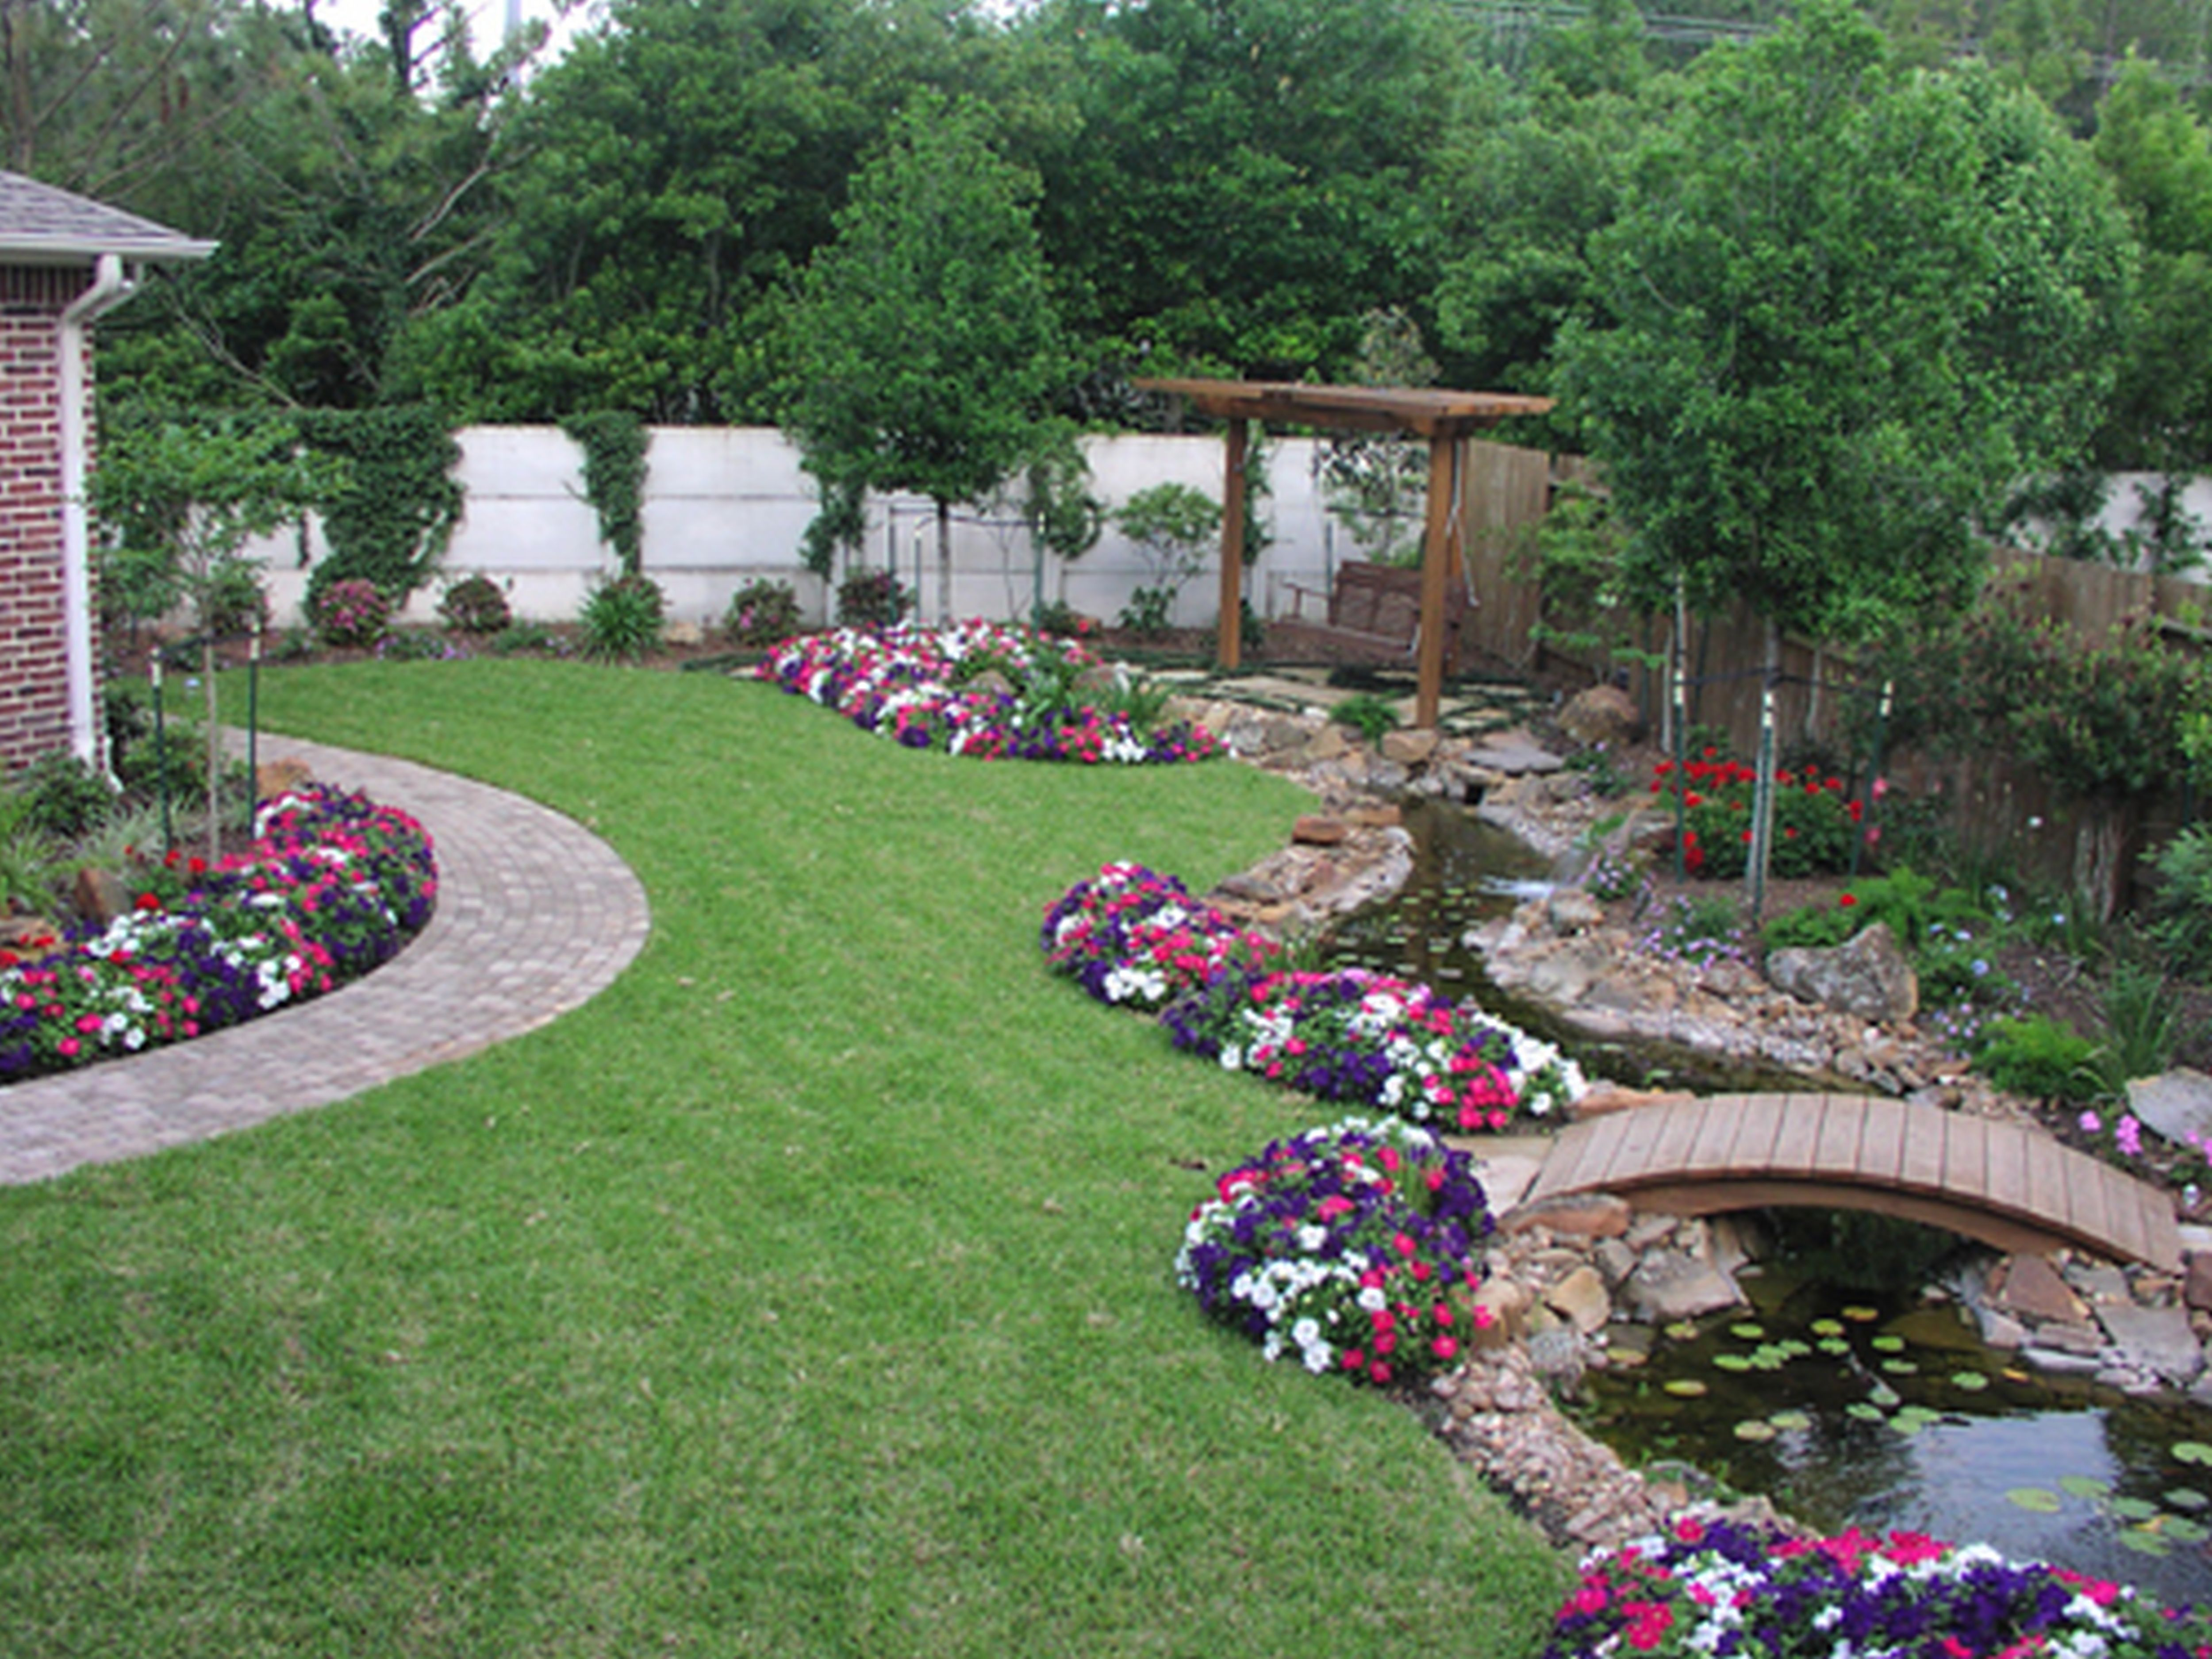 tiered flower beds - Google Search  Backyard landscaping, Home